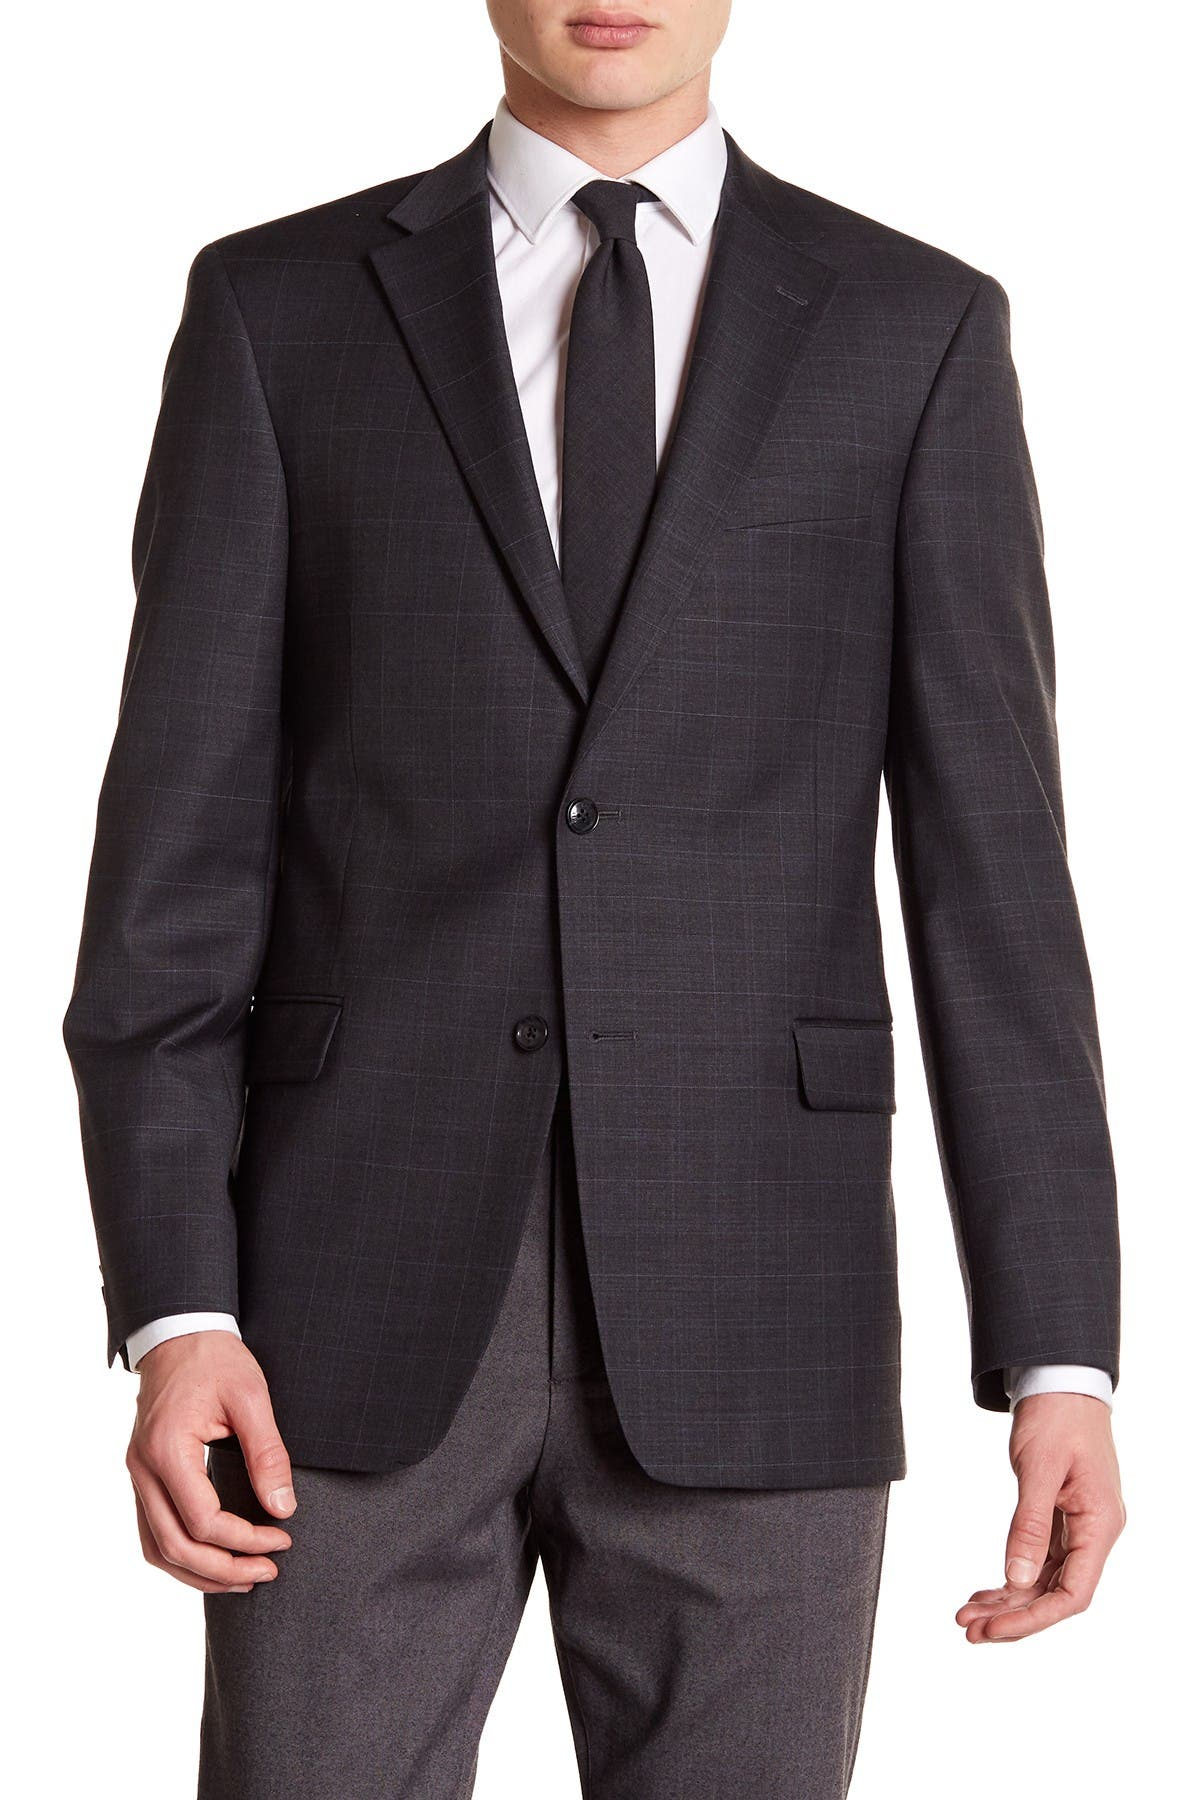 Image of Tommy Hilfiger Adams Modern Fit Flex Performance Wool Blend Suit Separates Jacket - Extended Sizes Available